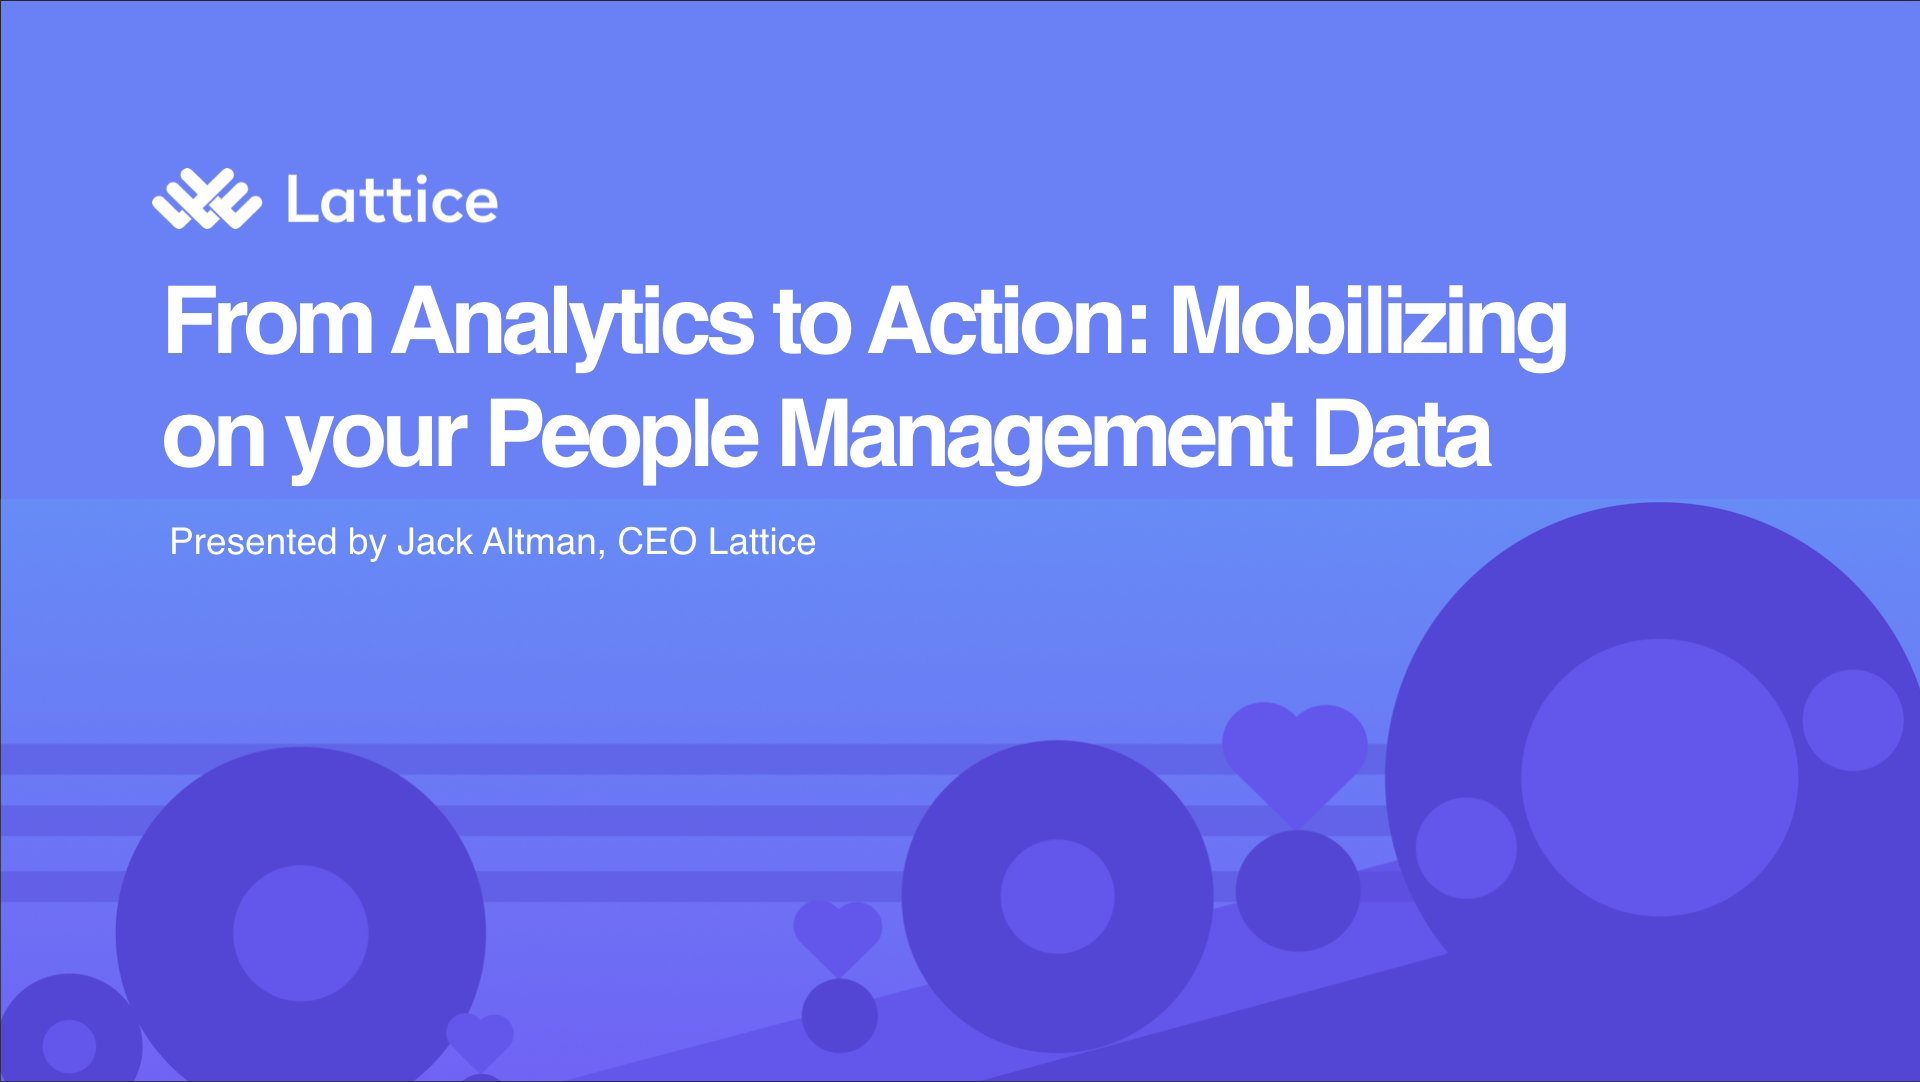 From Analytics to Action: Mobilizing Your People Management Data